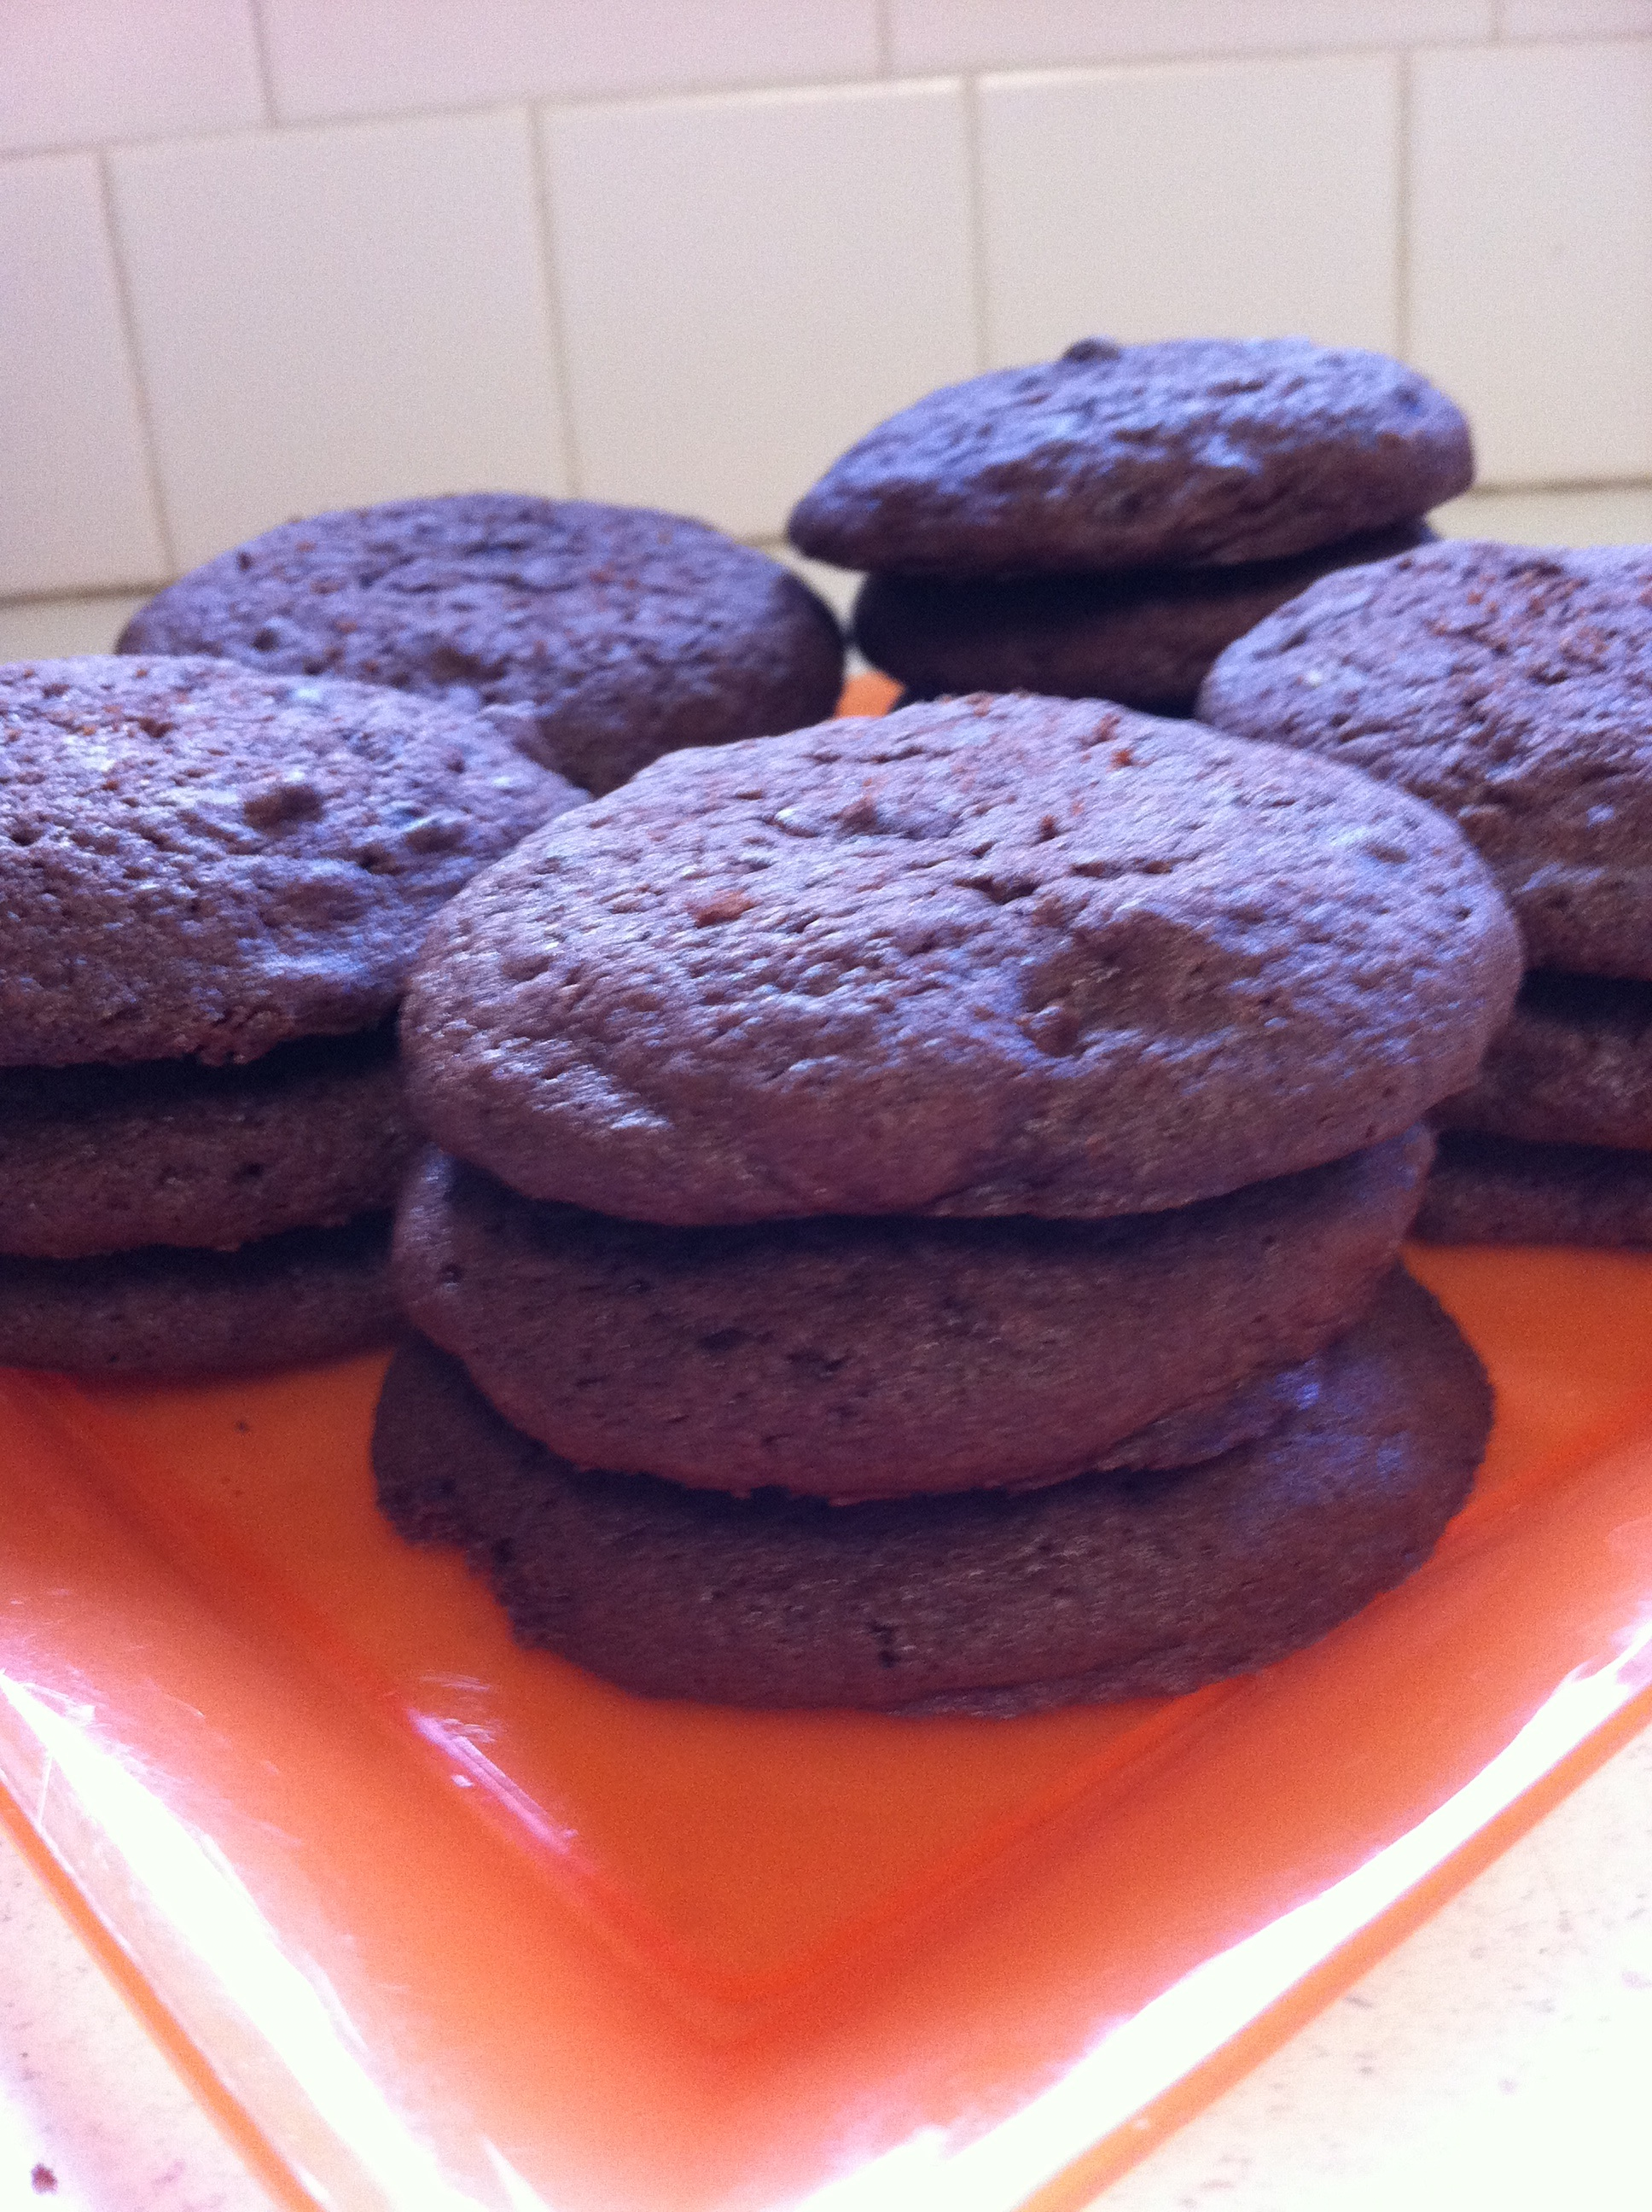 Jiffy muffin mix cookie recipes